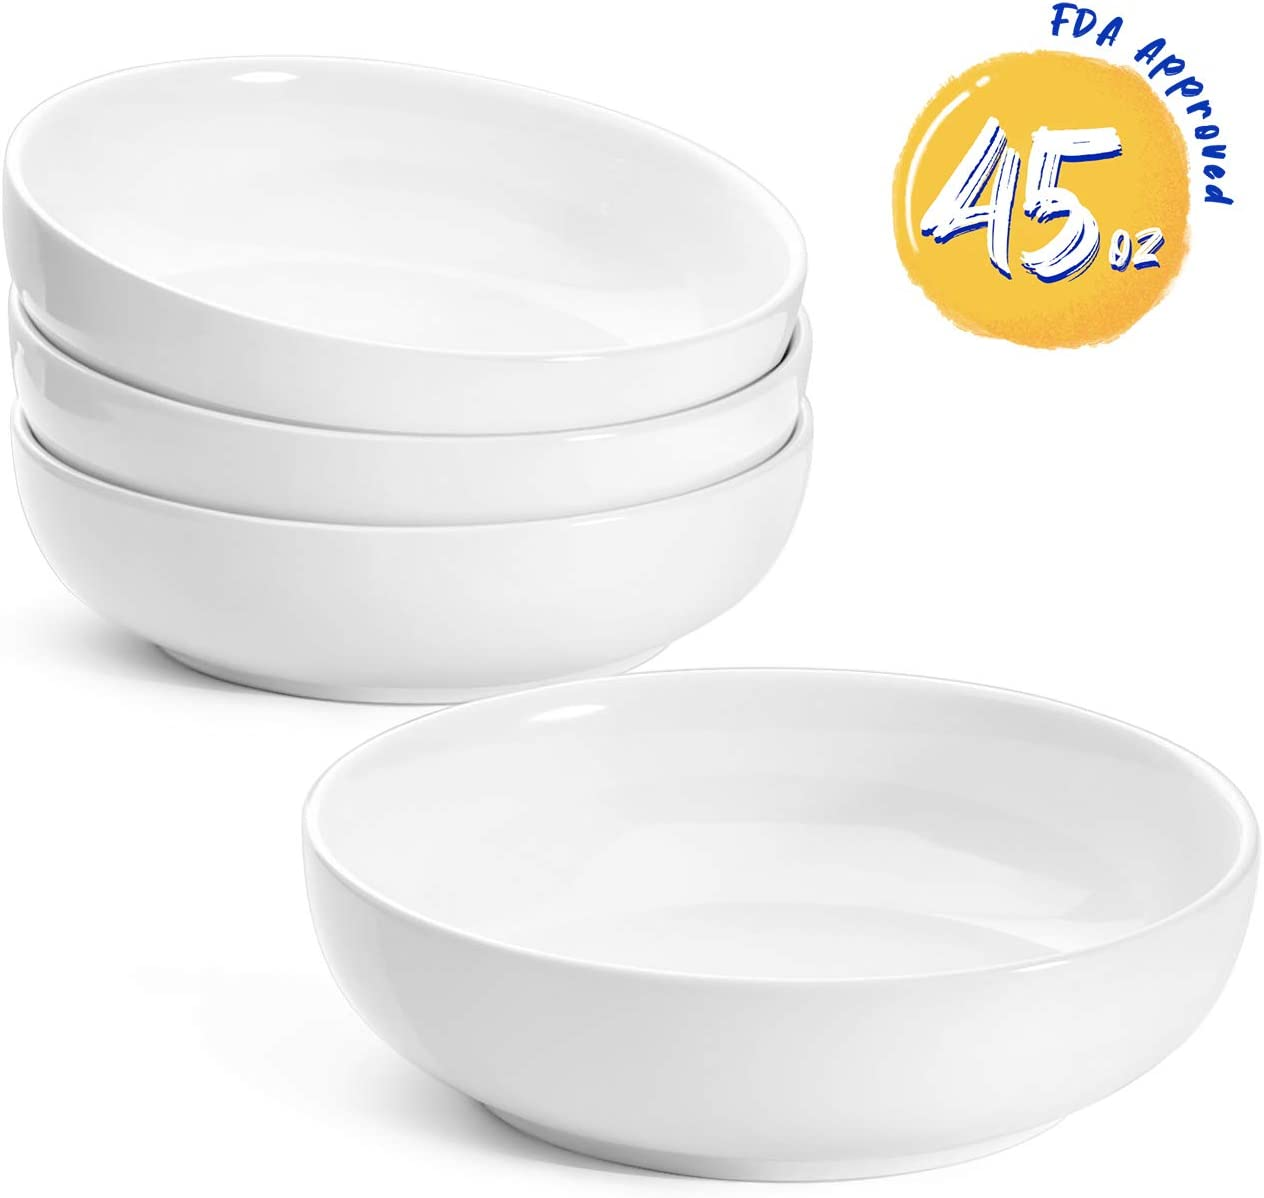 LE TAUCI Pasta Bowls Ceramic Salad Bowl, Large Serving Bowl Set 45 Ounce - Set of 4, White